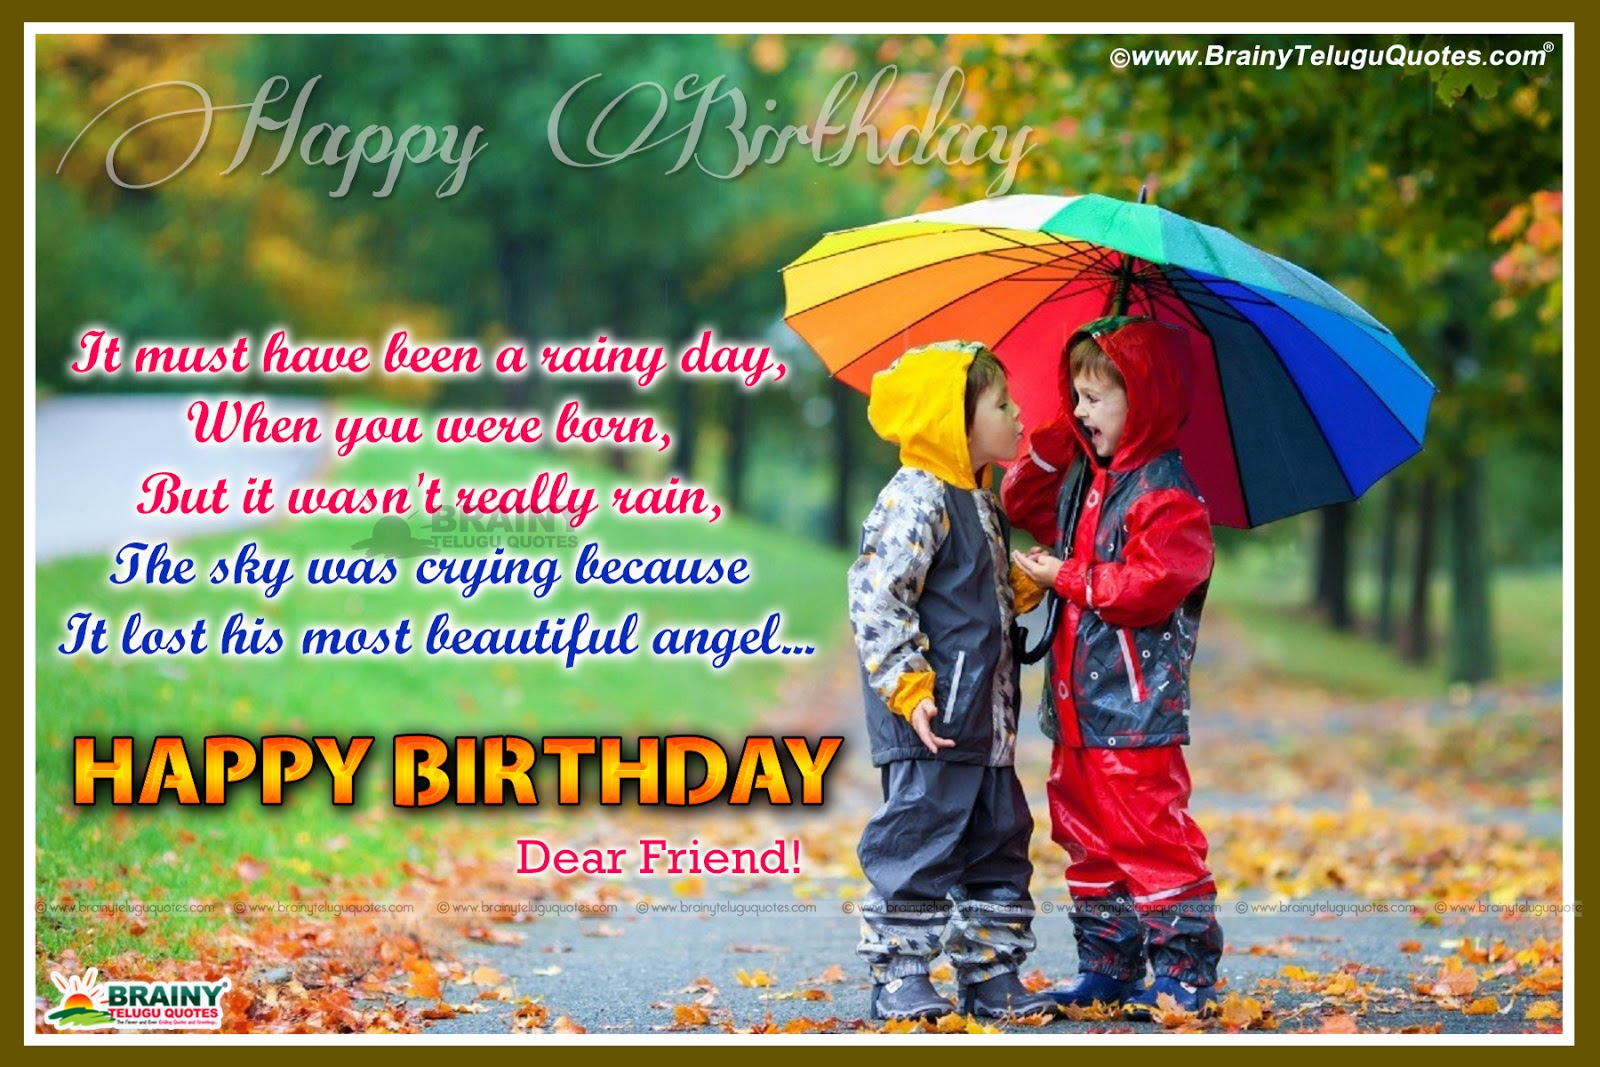 birthday wallpaper quotes ; happy%252Bbirthday%252Blatest%252Benglish%252Bhd%252Bwallpapers%252Bquotes-brainyteluguqutoes